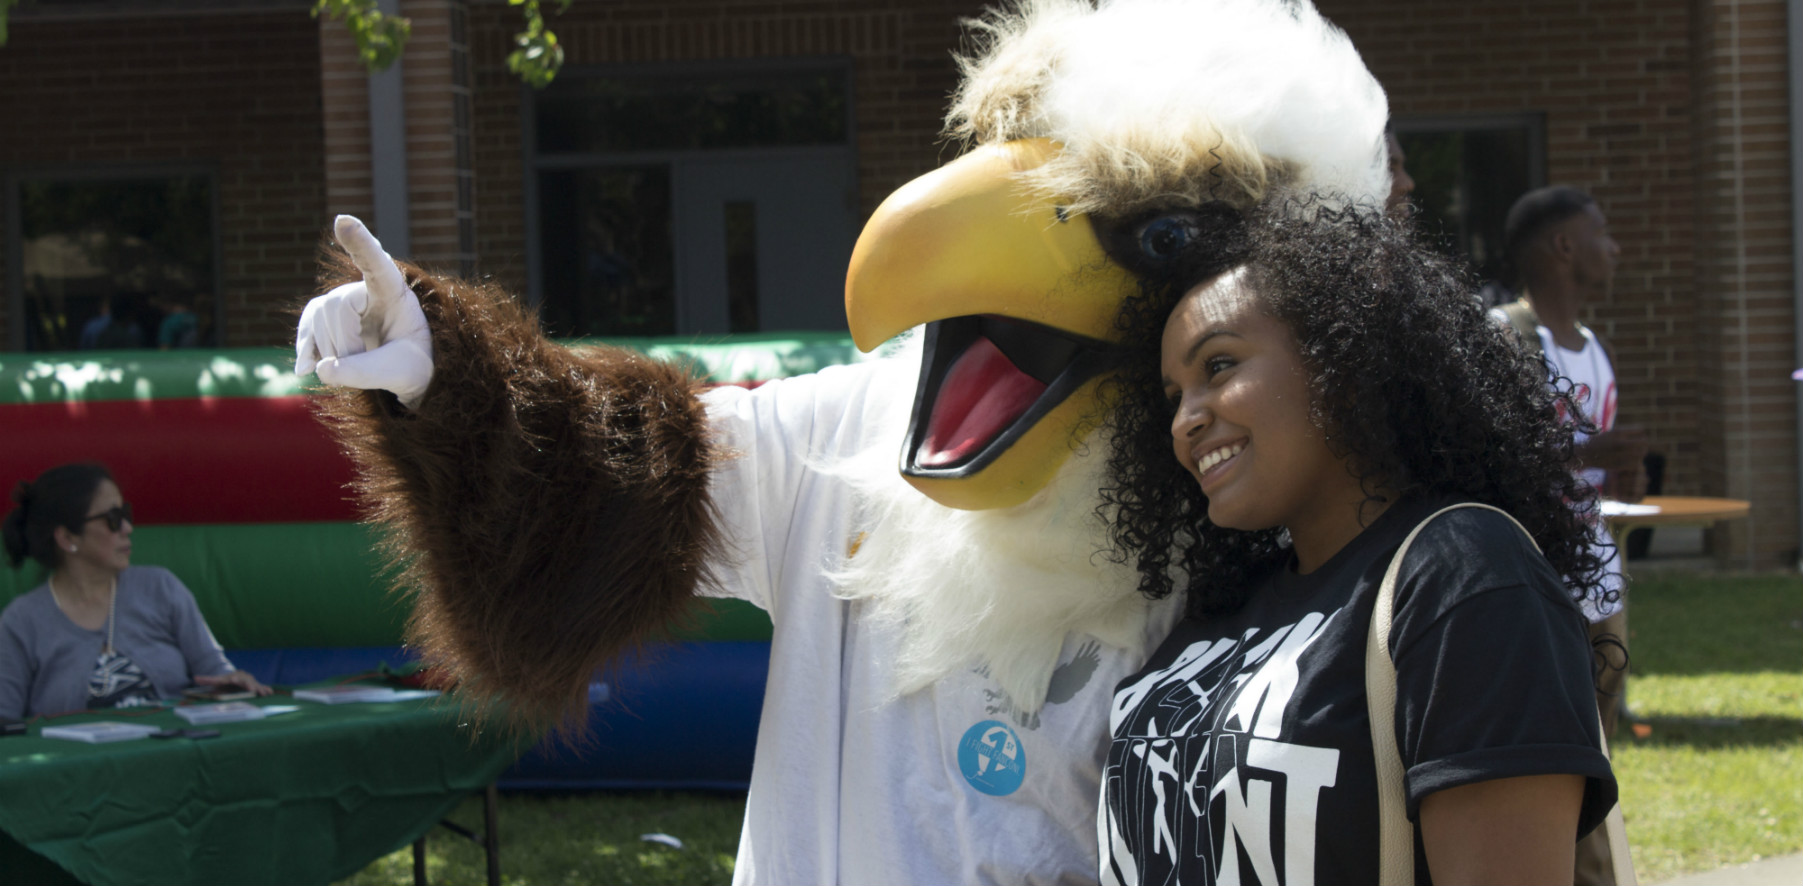 A student takes a photo with the eagle at Stu-Fac Spring 2015